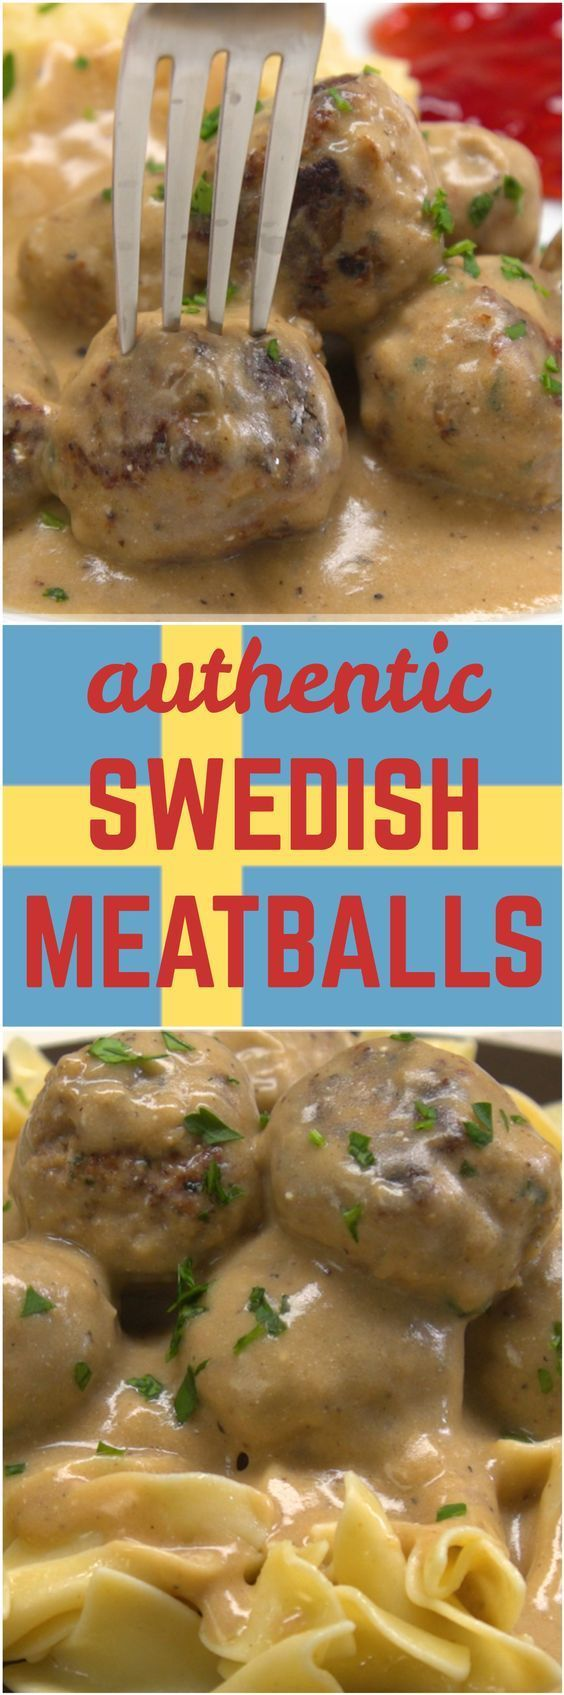 Best 25+ Authentic swedish meatballs recipe ideas on Pinterest ...